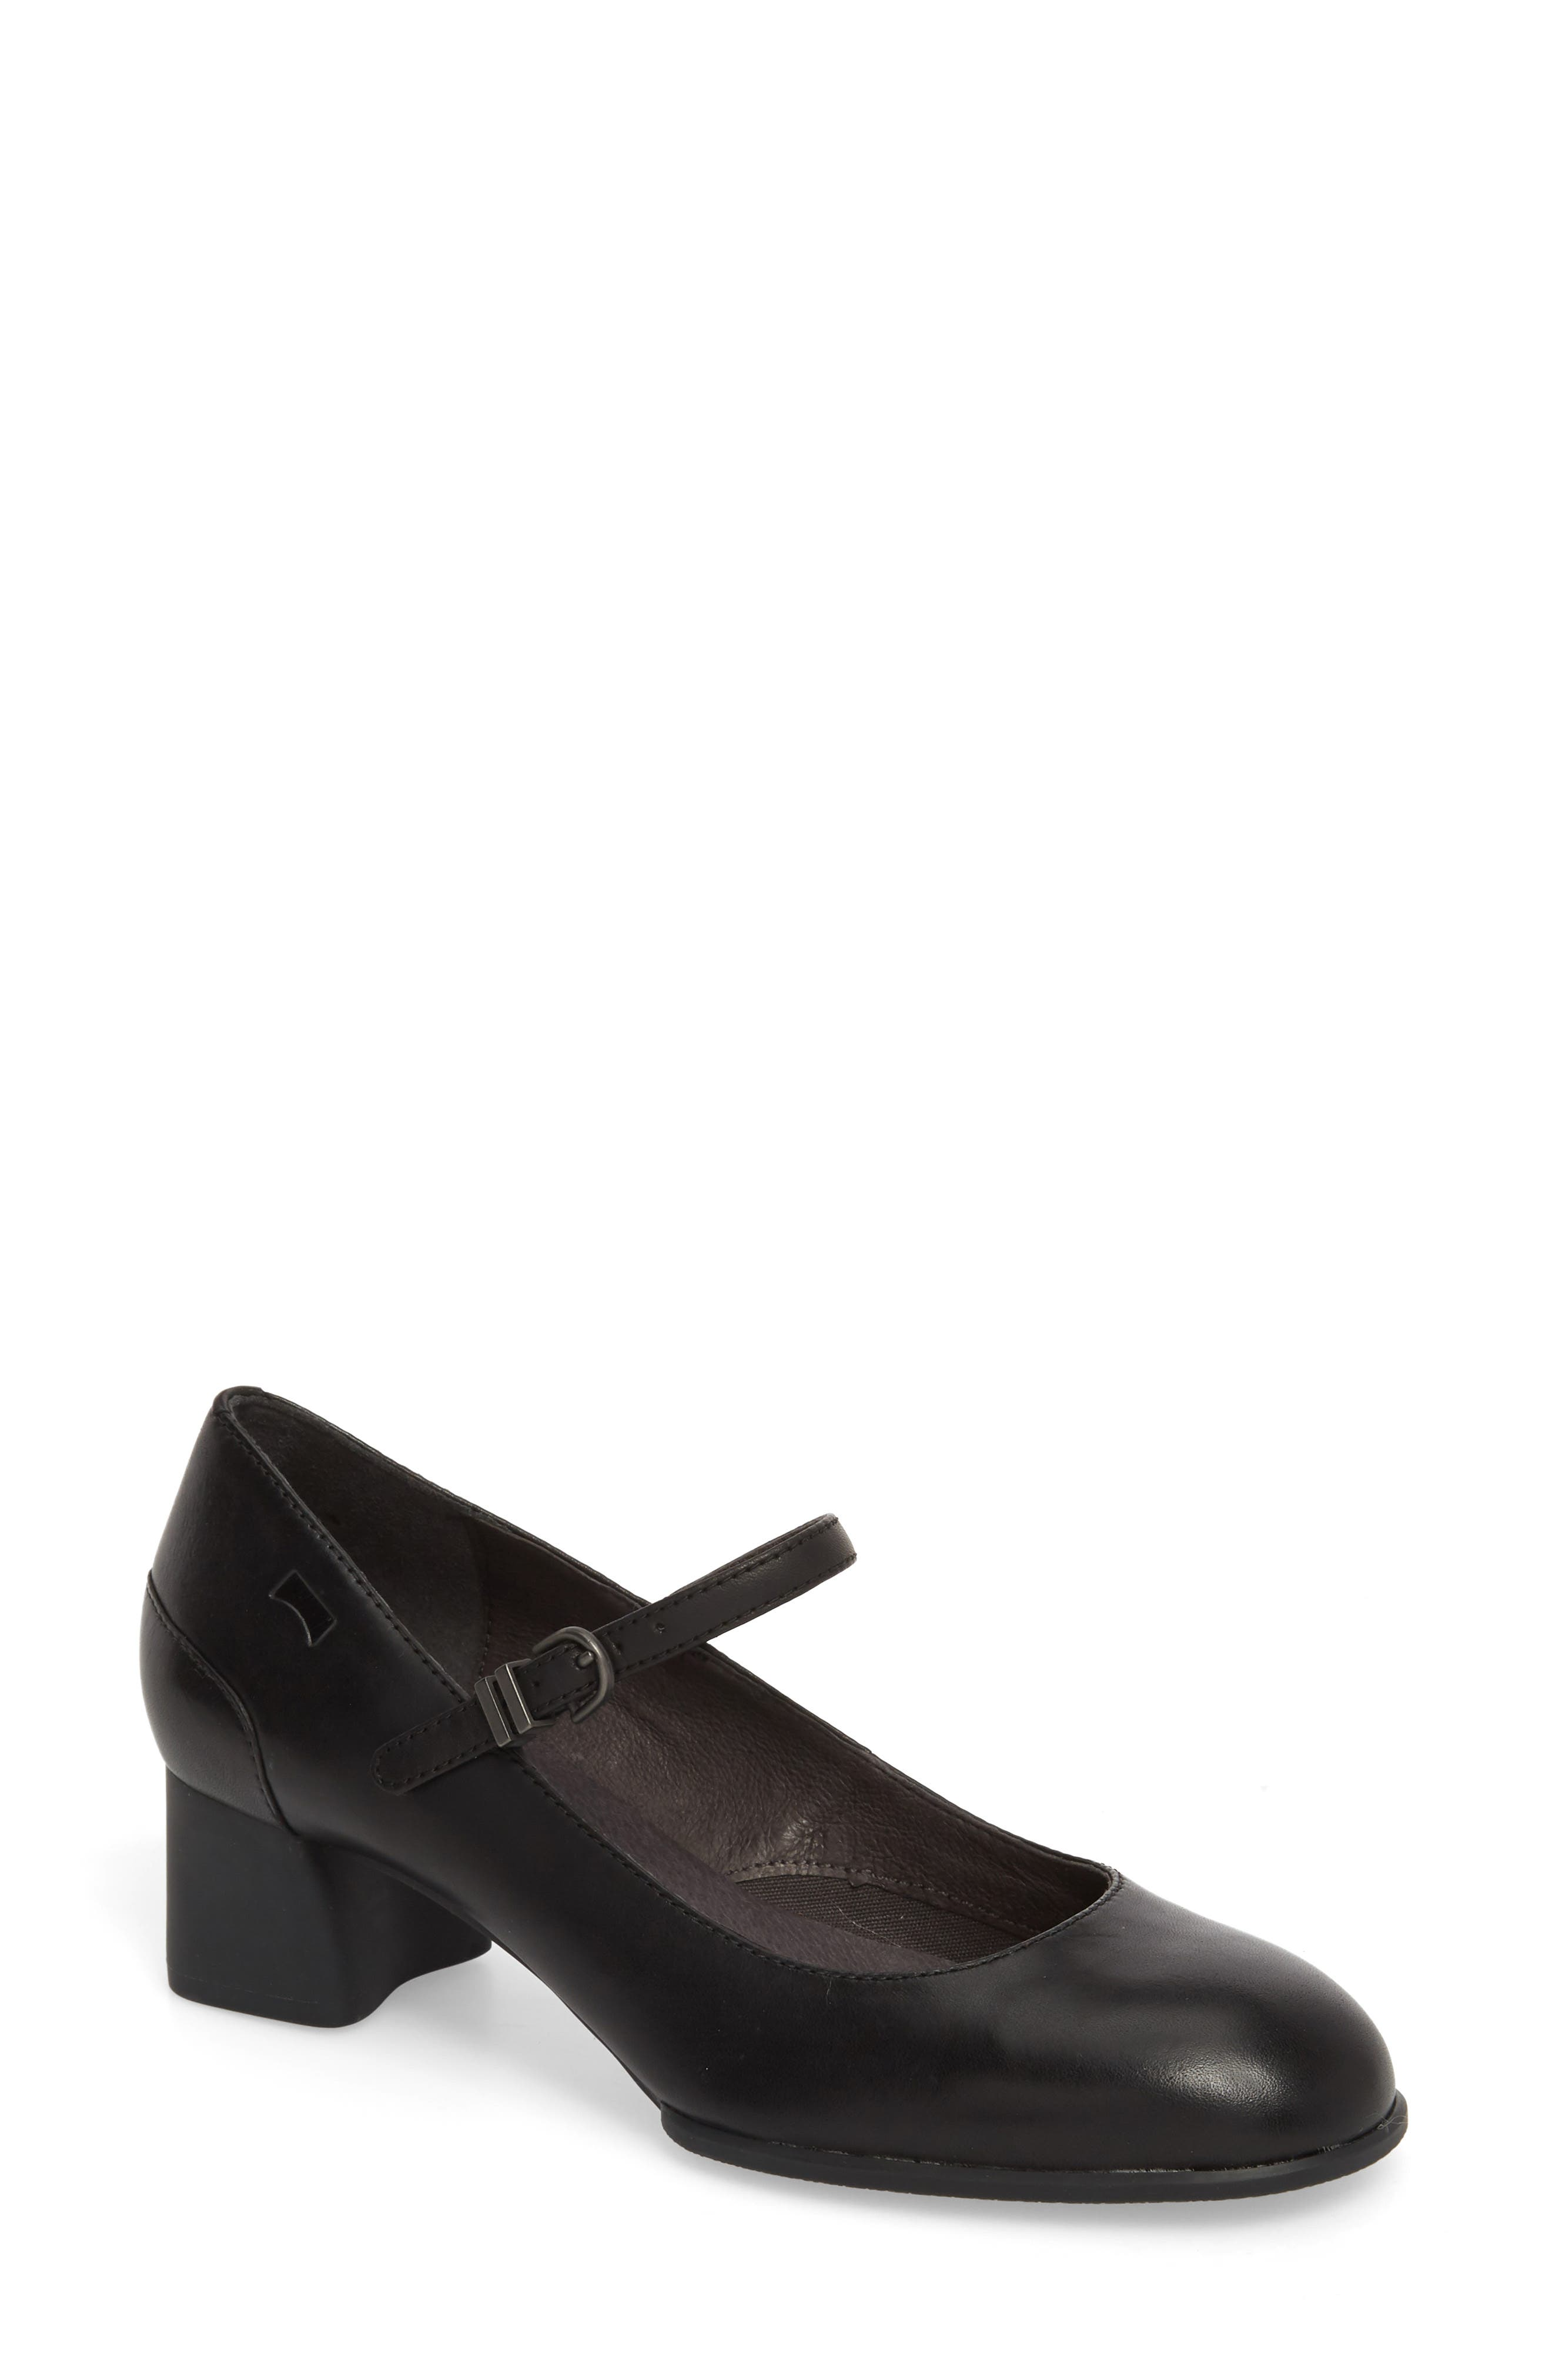 Katie Mary Jane Pump,                             Main thumbnail 1, color,                             BLACK LEATHER